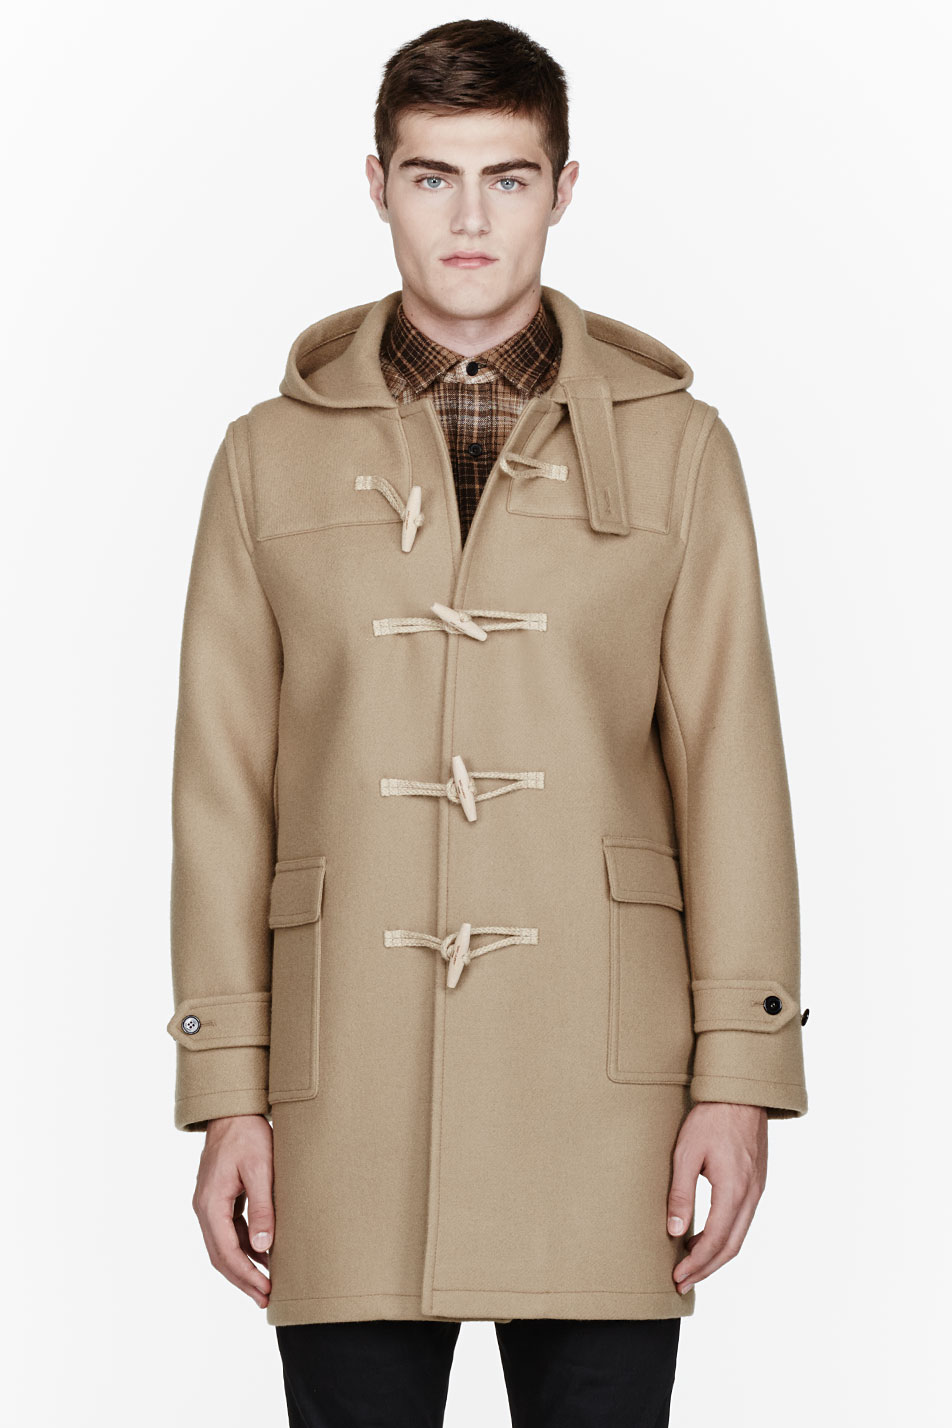 Saint laurent Camel Classic Duffle Coat in Natural for Men | Lyst